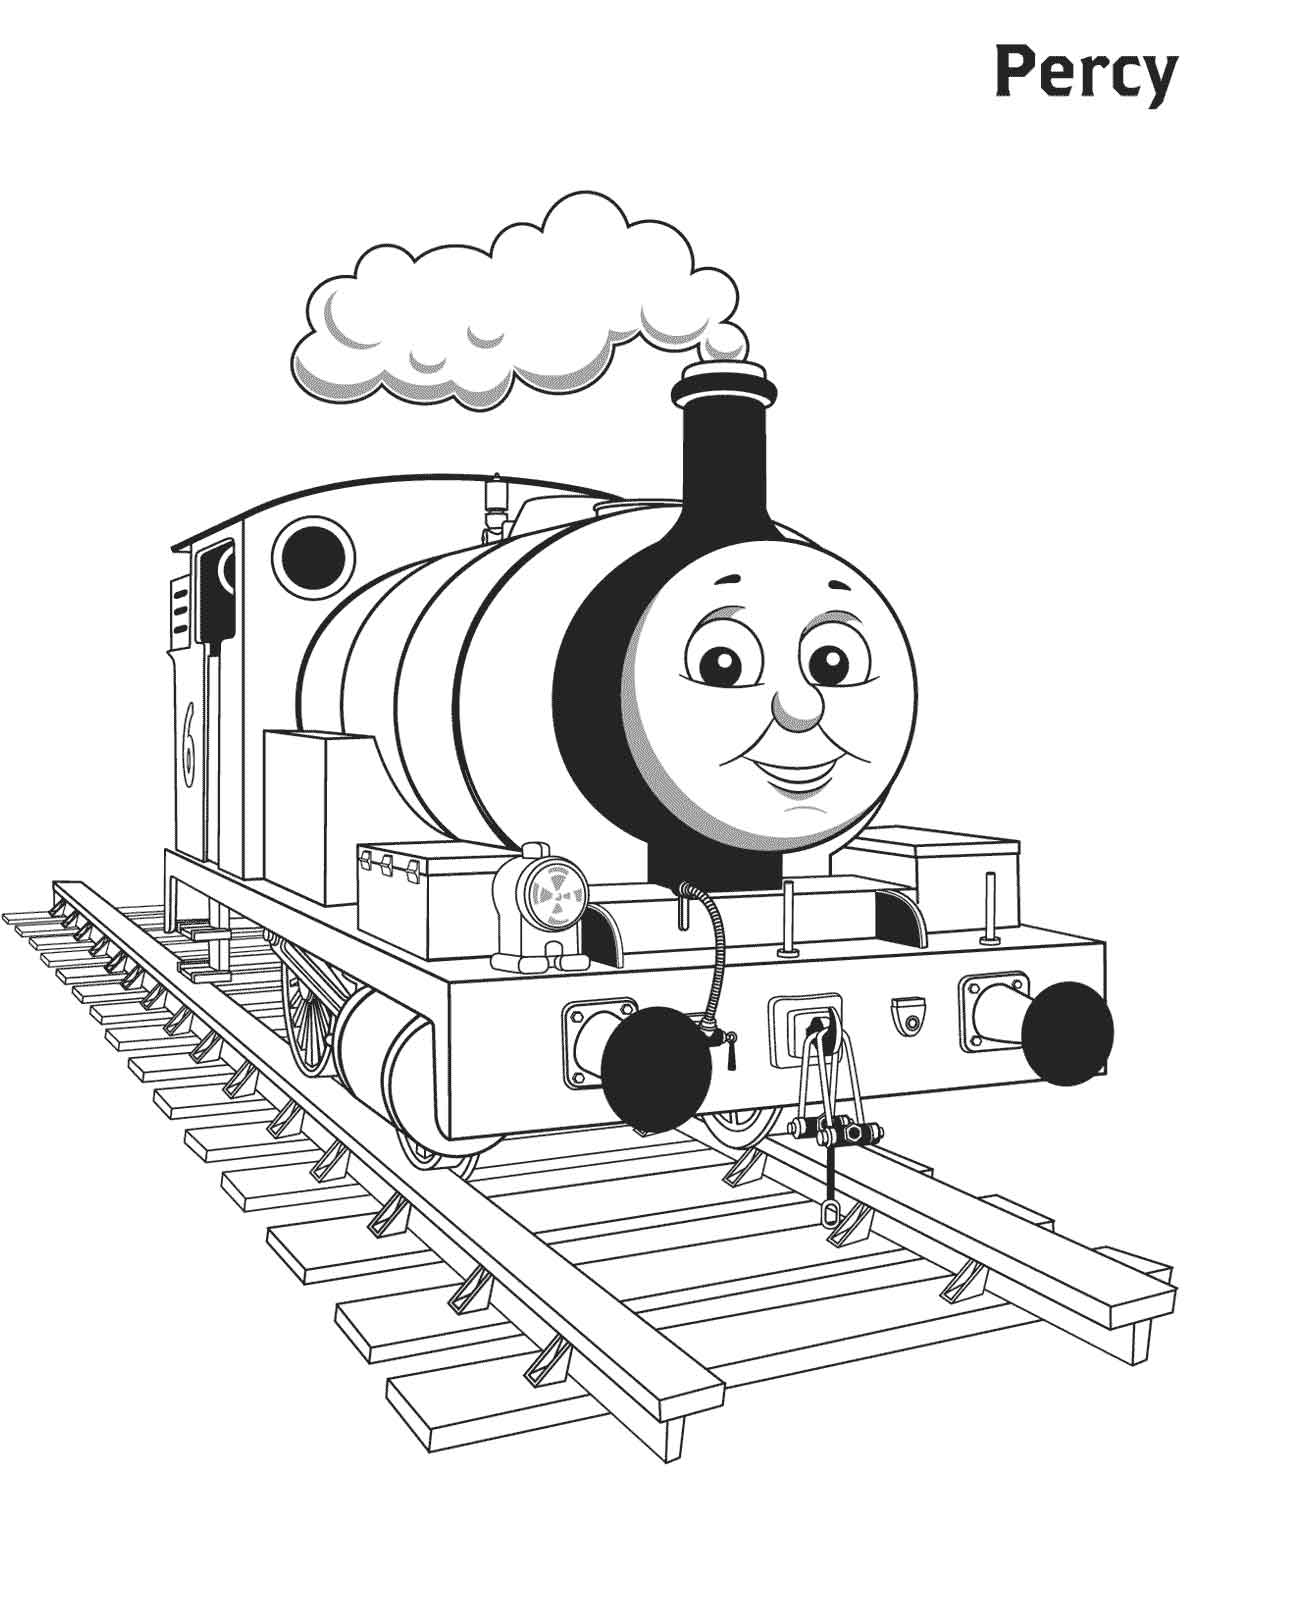 easy train coloring pages simple thomas the train coloring pages train coloring pages easy train coloring